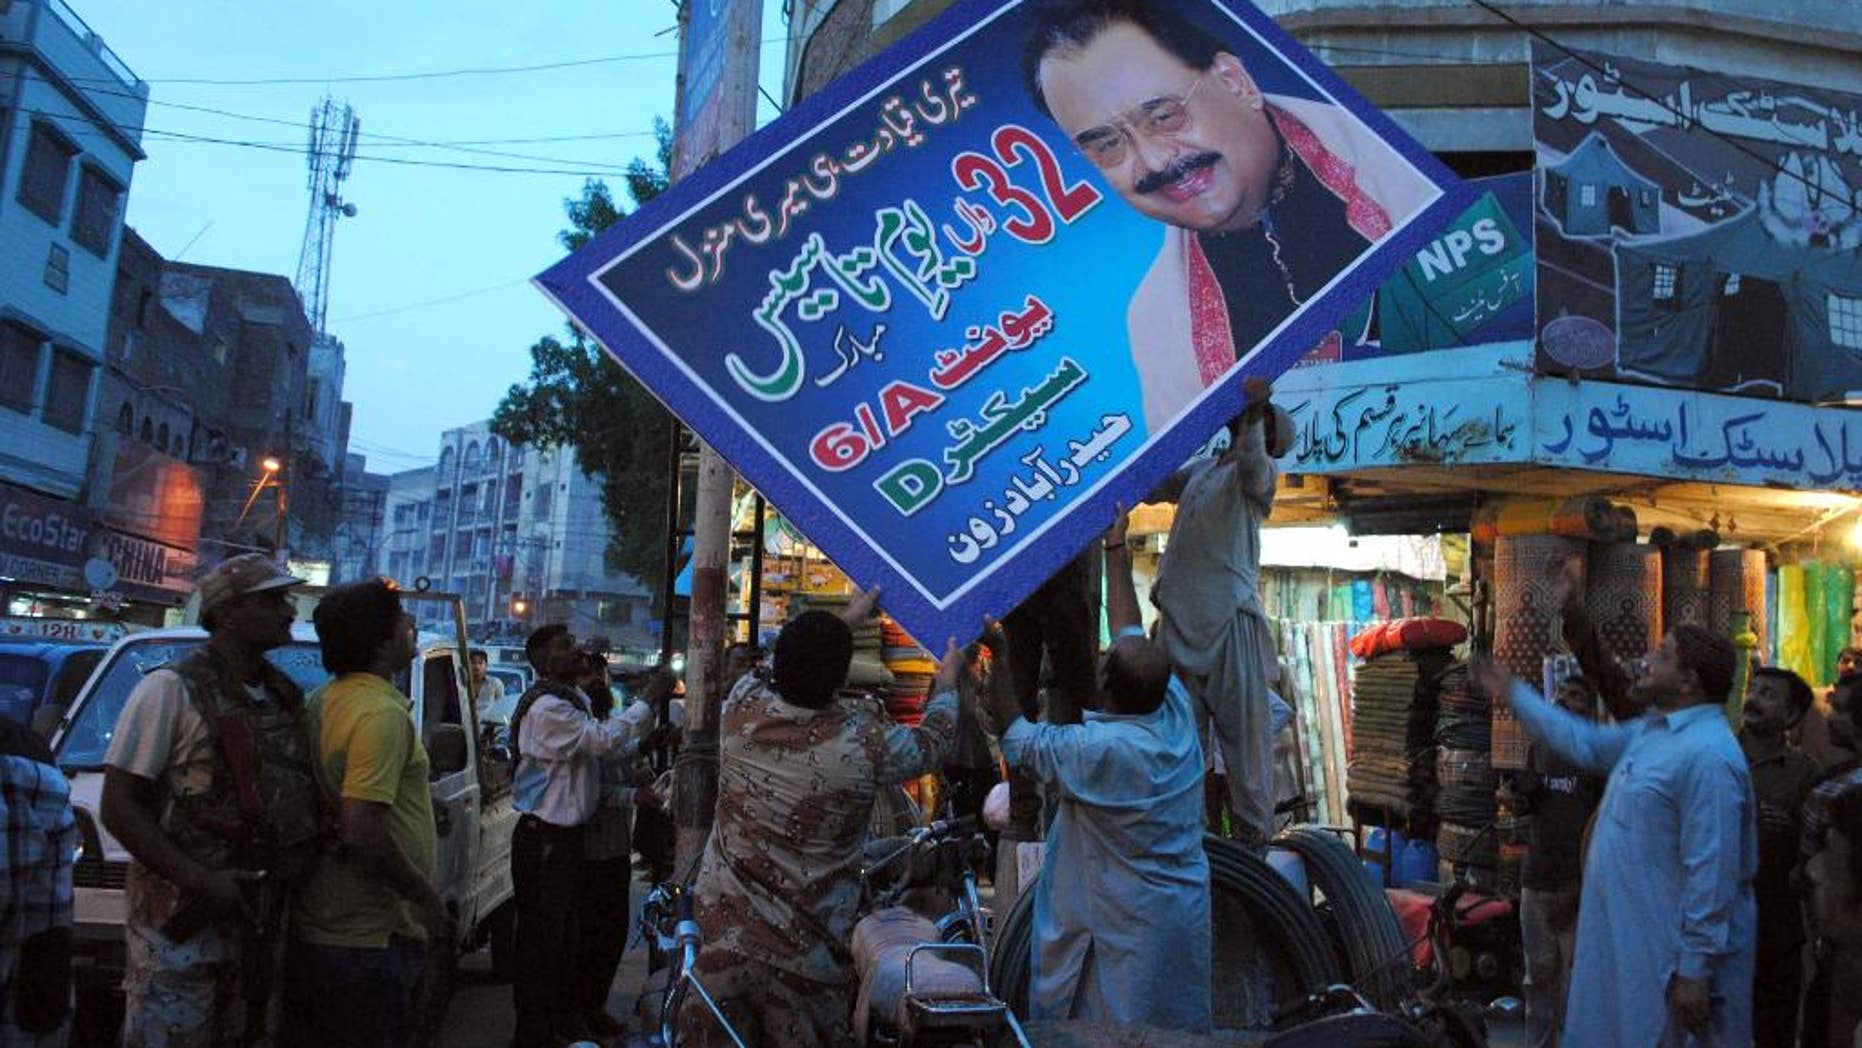 FILE - In this Thursday, Aug. 25, 2016 file photo, Pakistani paramilitary forces remove a poster of Altaf Hussain, leader of the Muttahida Qaumi Movement, or MQM, in Hyderabad, Pakistan. Pakistan's Ministry of Interior said it has written a formal request to London to seek legal action against Hussain. A ministry statement says the government sent a dossier on Hussain to U.K. authorities on Tuesday, Aug. 30, 2016, with allegations of inciting violence and disturbing law and order in Pakistan. (AP Photo/Pervez Masih, File)